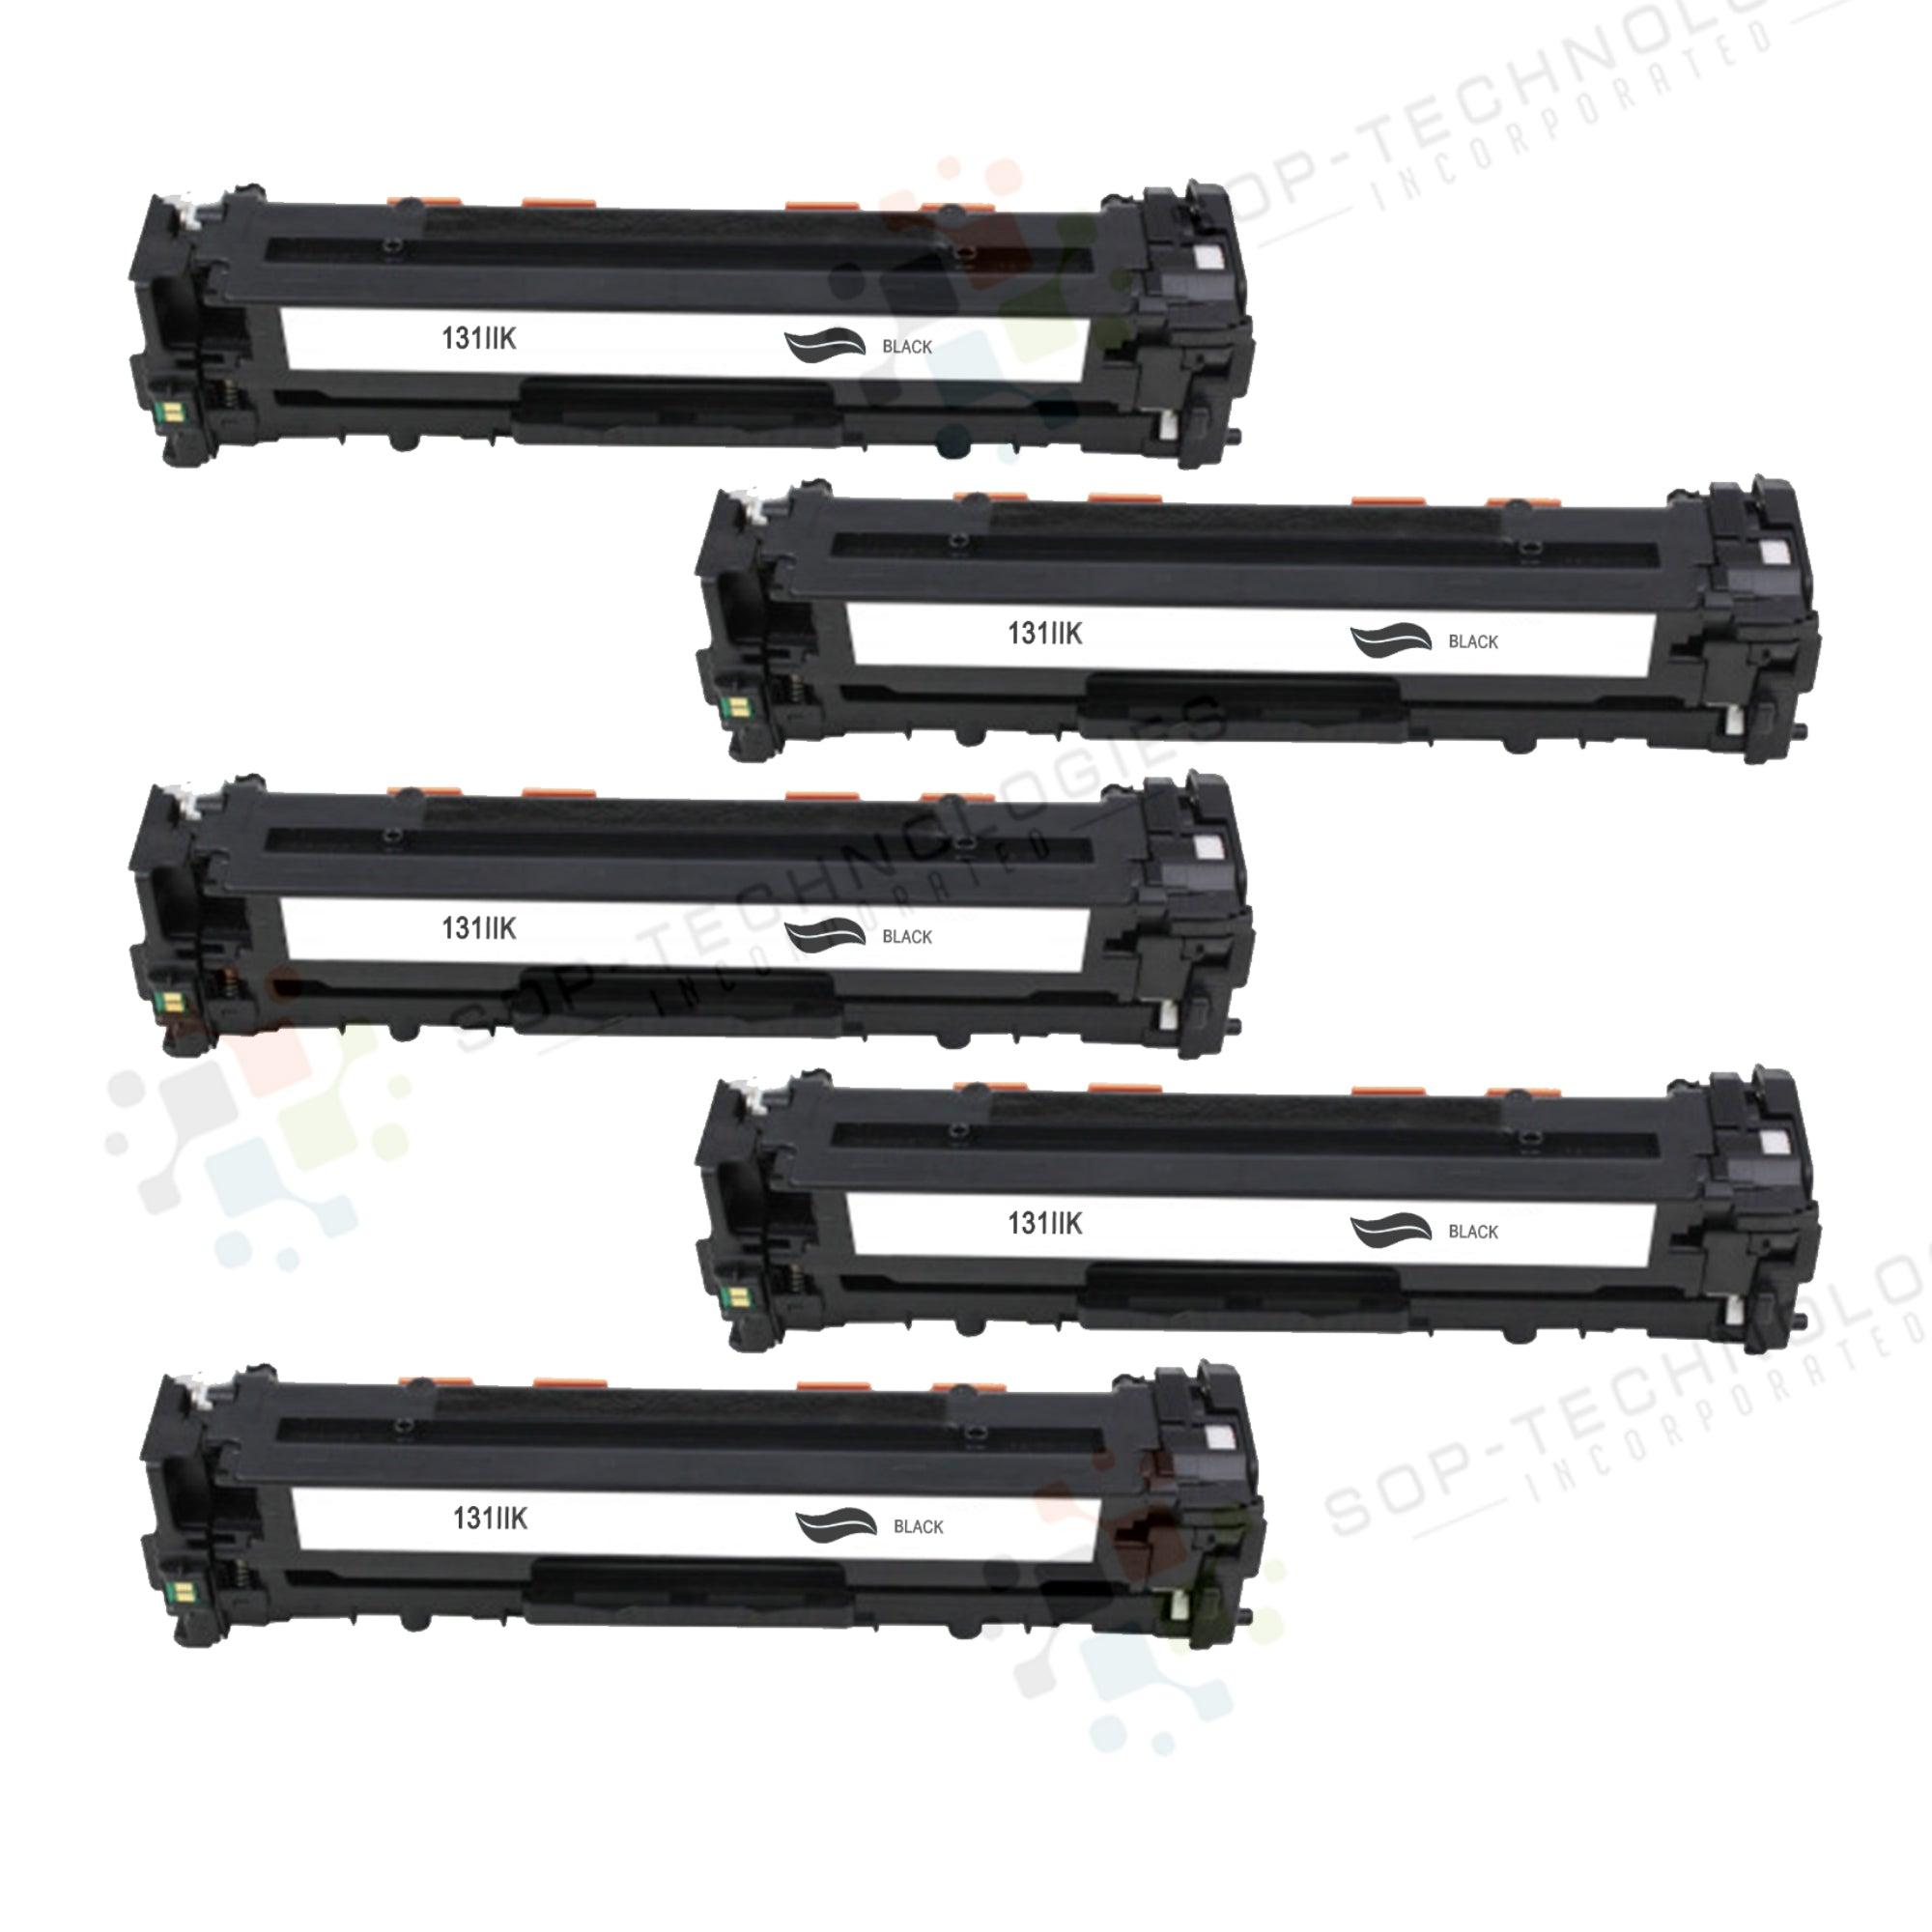 5pk Replacement Toner Cartridge for Canon imageClass MF8280Cw